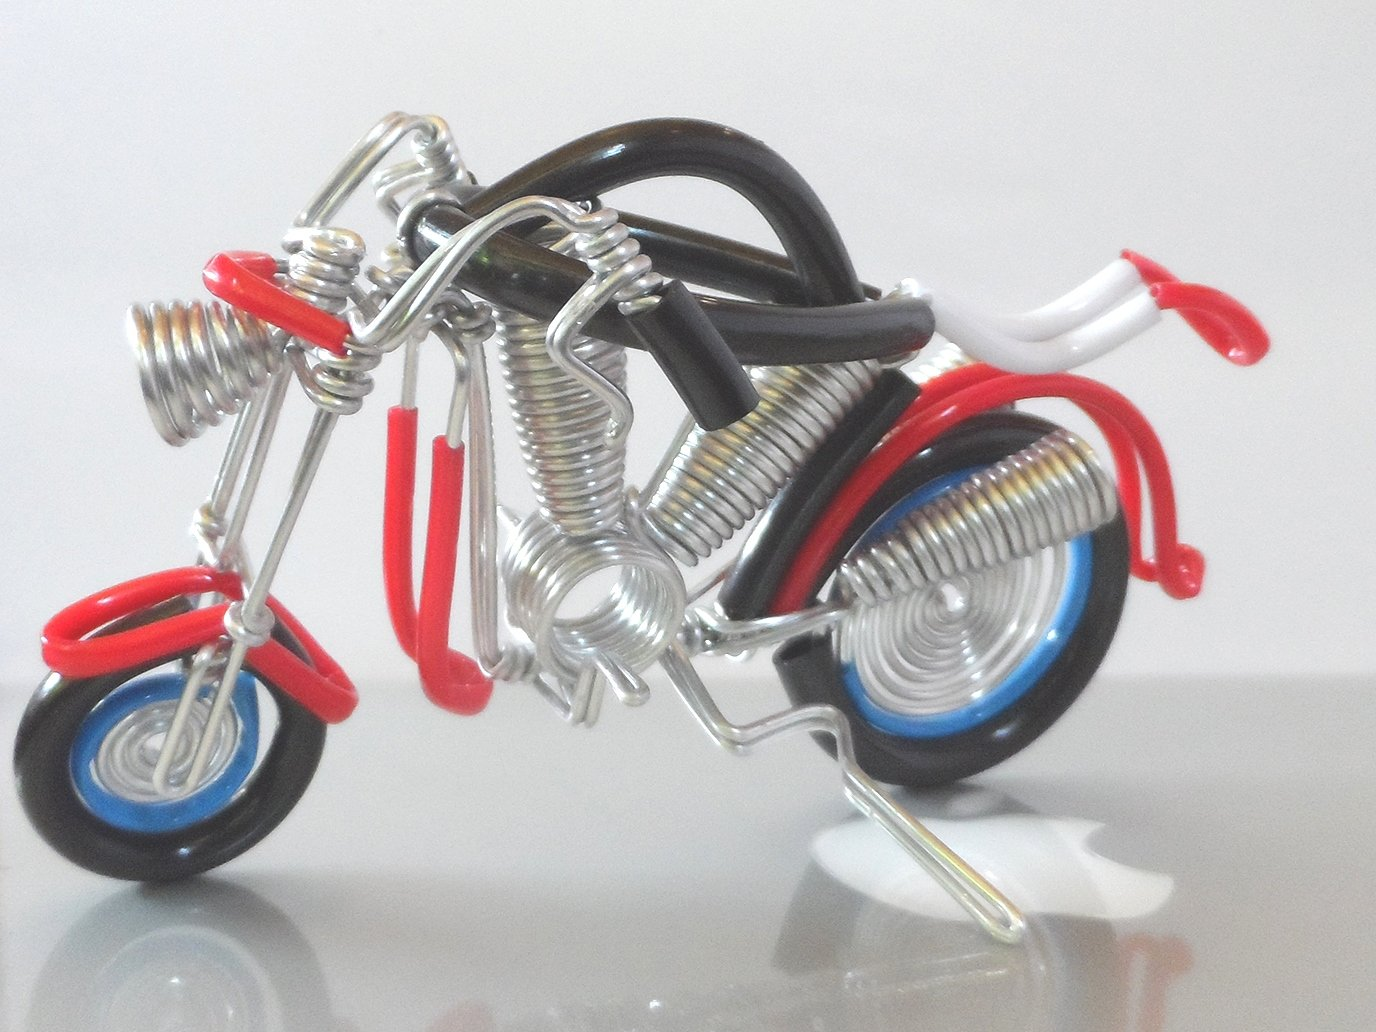 Wire Vintage Handmade Craft Metal Motorbike Motorcycle Model Home Decor Ornament Toy